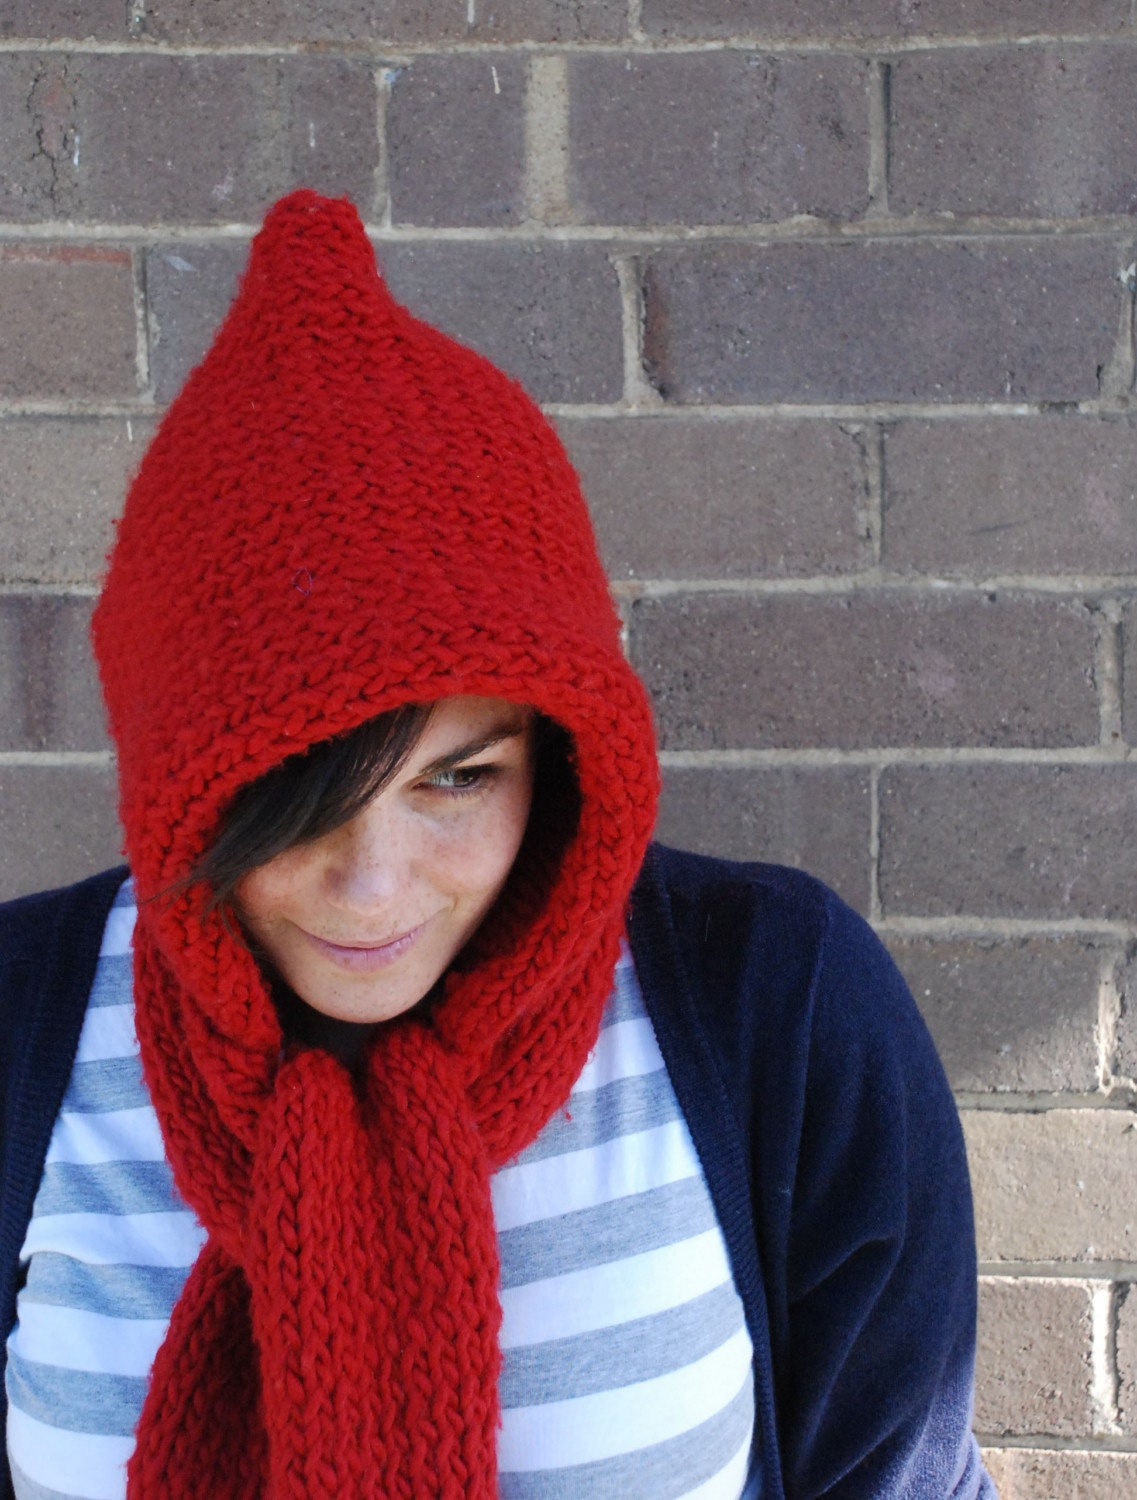 Hooded Scarf LEARN TO KNIT Knitting Pattern by knittyknitty